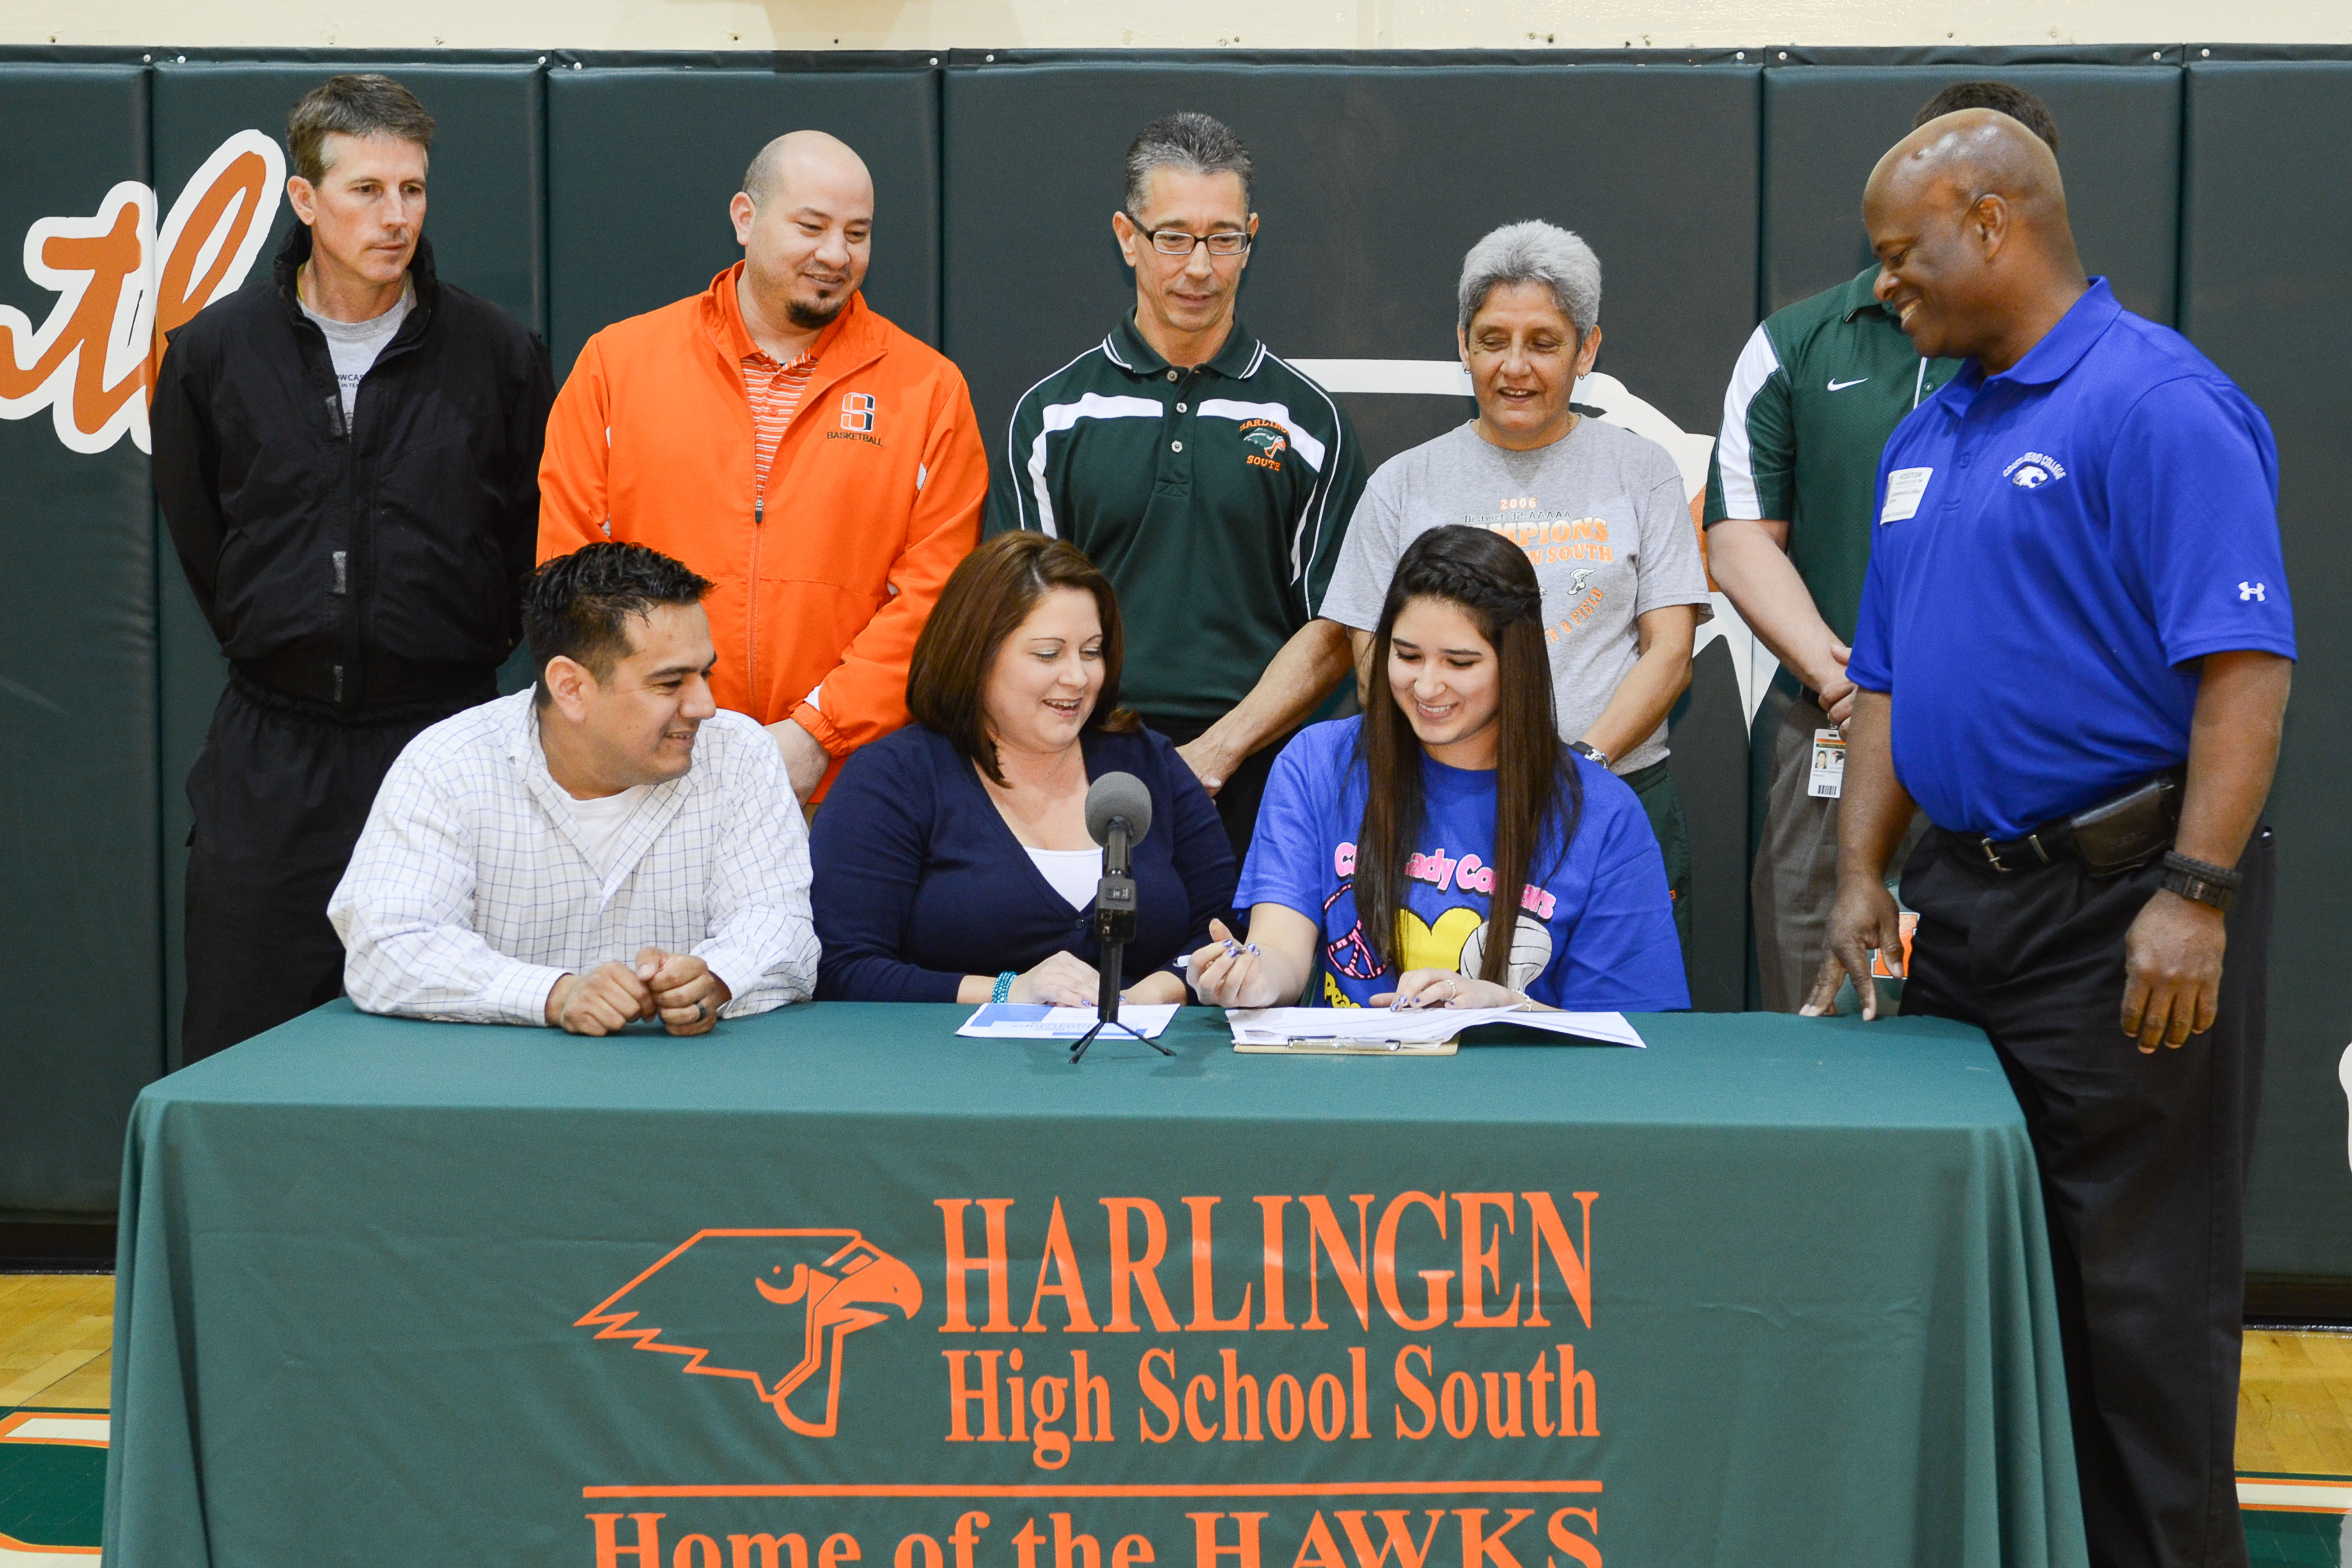 HHSS volleyball player signs letter of intent to continue athletic career